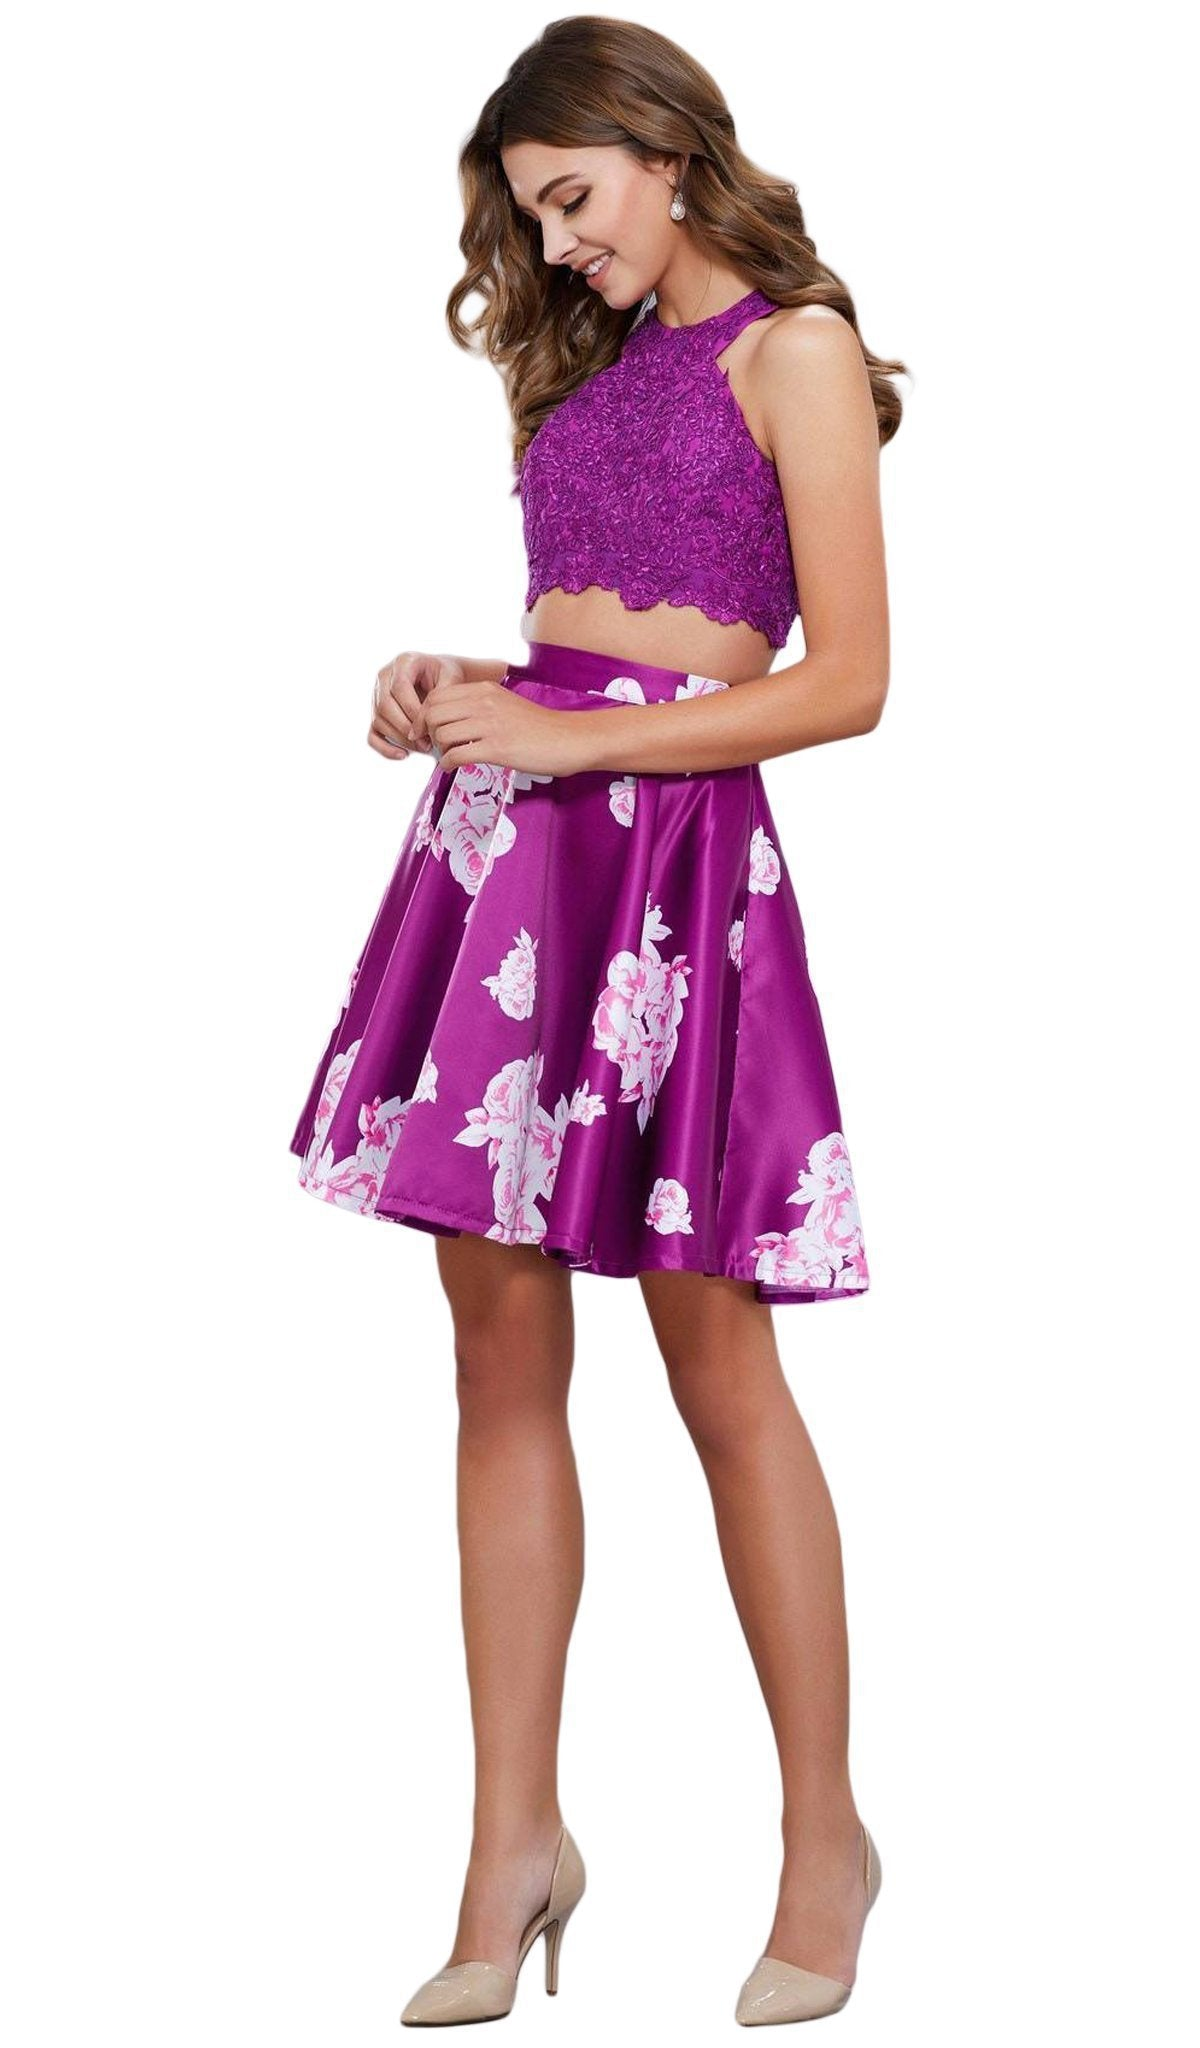 Nox Anabel - Two-Piece Lace And Floral Cocktail Dress 6219SC